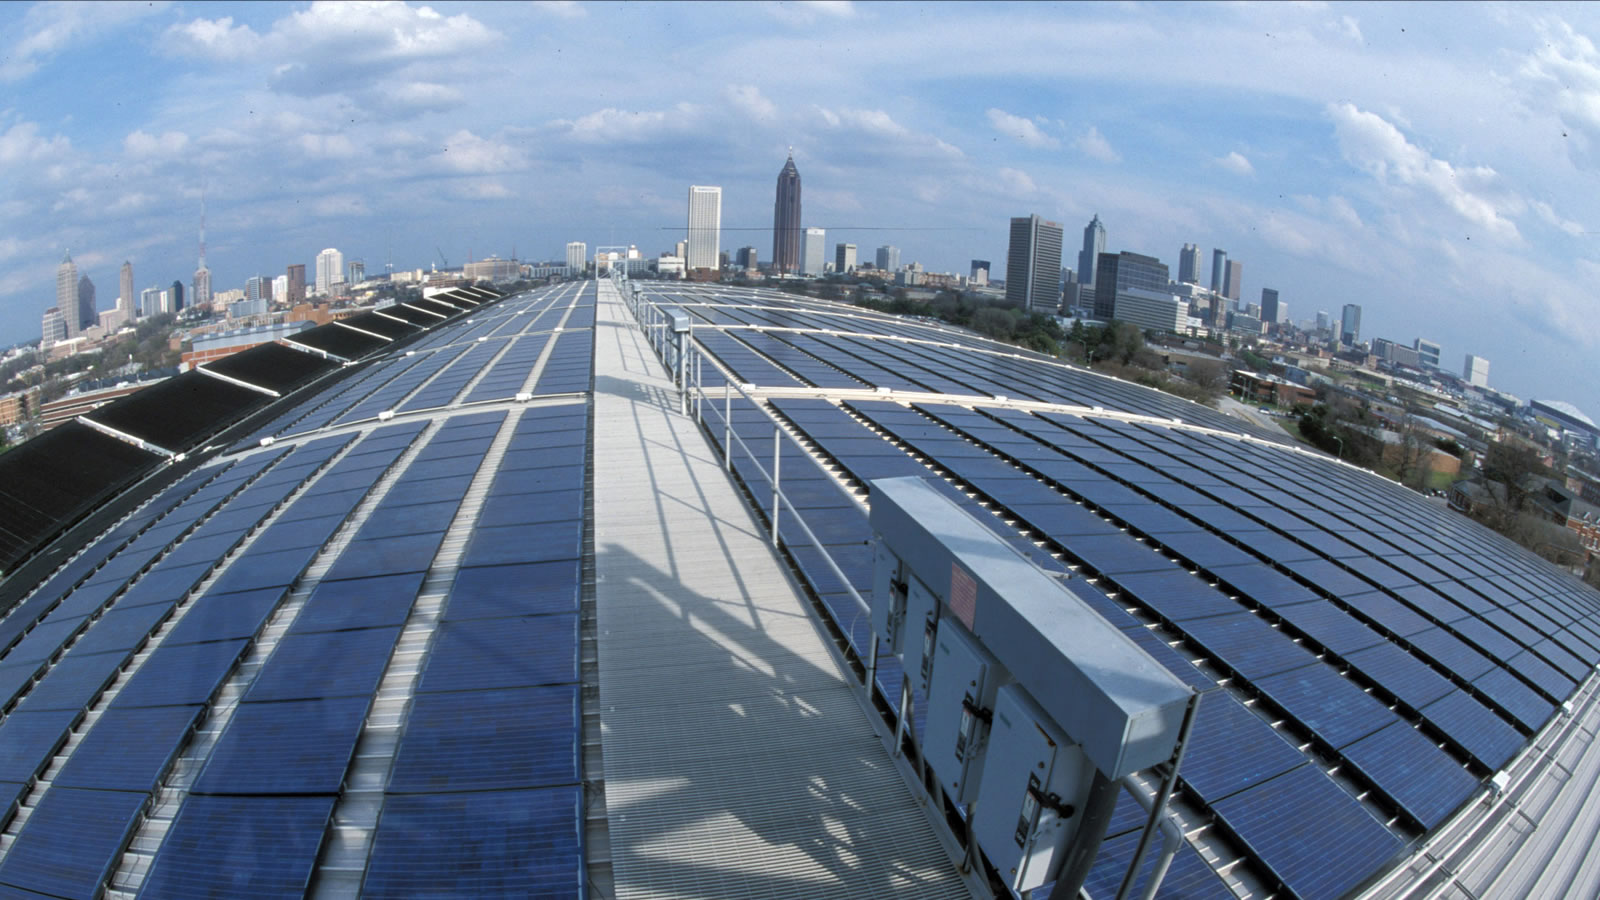 <h3>ATLANTA</h3><h5>Spurred on by our research and local action, Atlanta committed to go 100% renewable by 2035. We're asking a dozen other key cities to do the same.</h5><em>Georgia Tech Aquatic Center / WikimediaCommons.com</em>